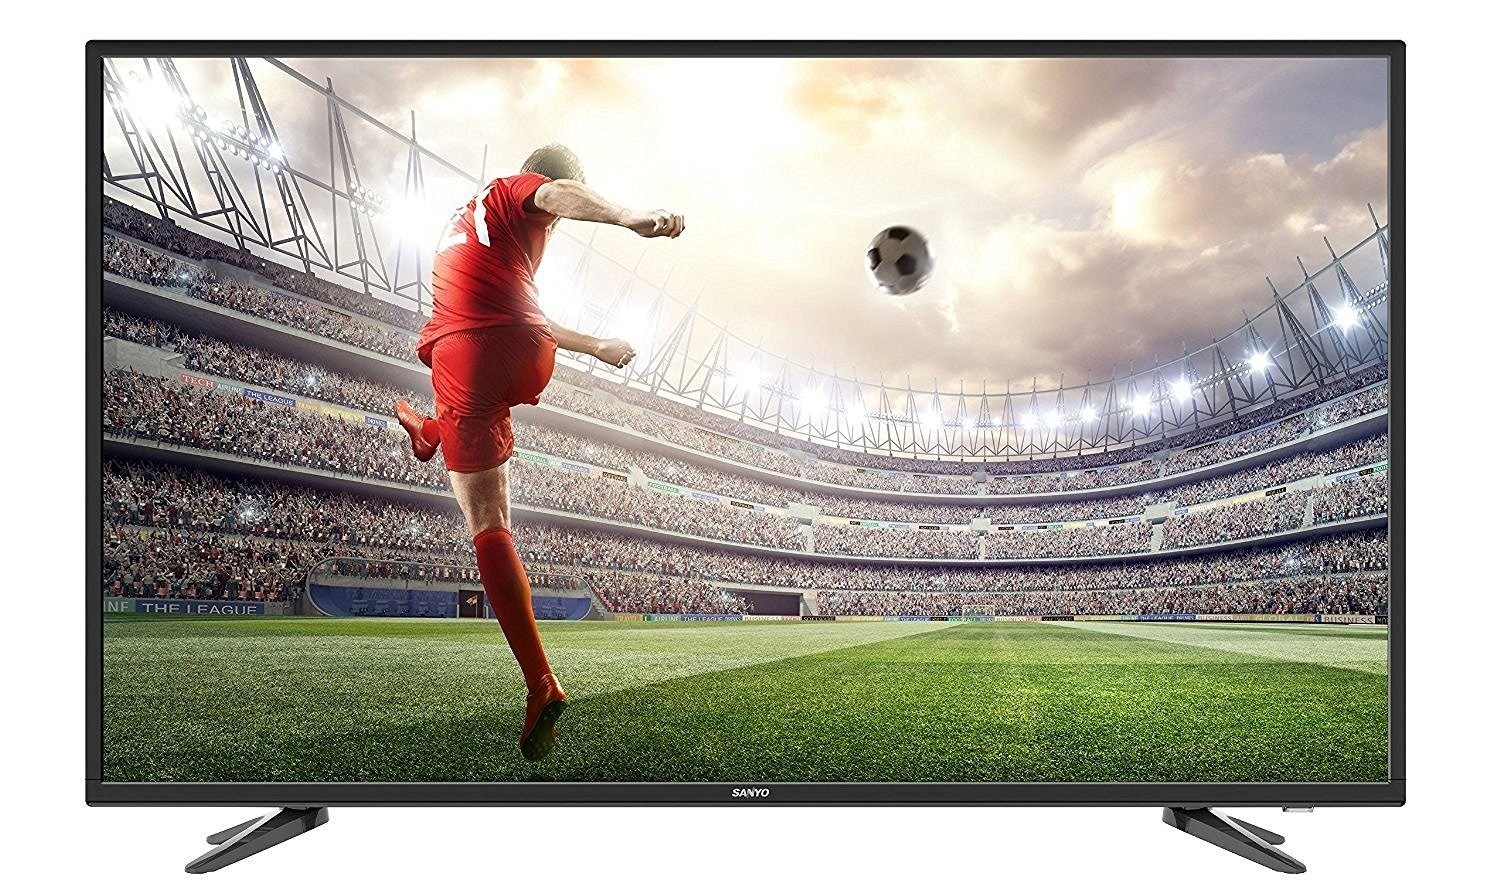 Tv Fest!! Win  Prizes Worth Of Rs.5,000 By Amazon | Sanyo 124 cm (49 inches) XT-49S7100F Full HD LED IPS TV (Black) @ Rs.33,490